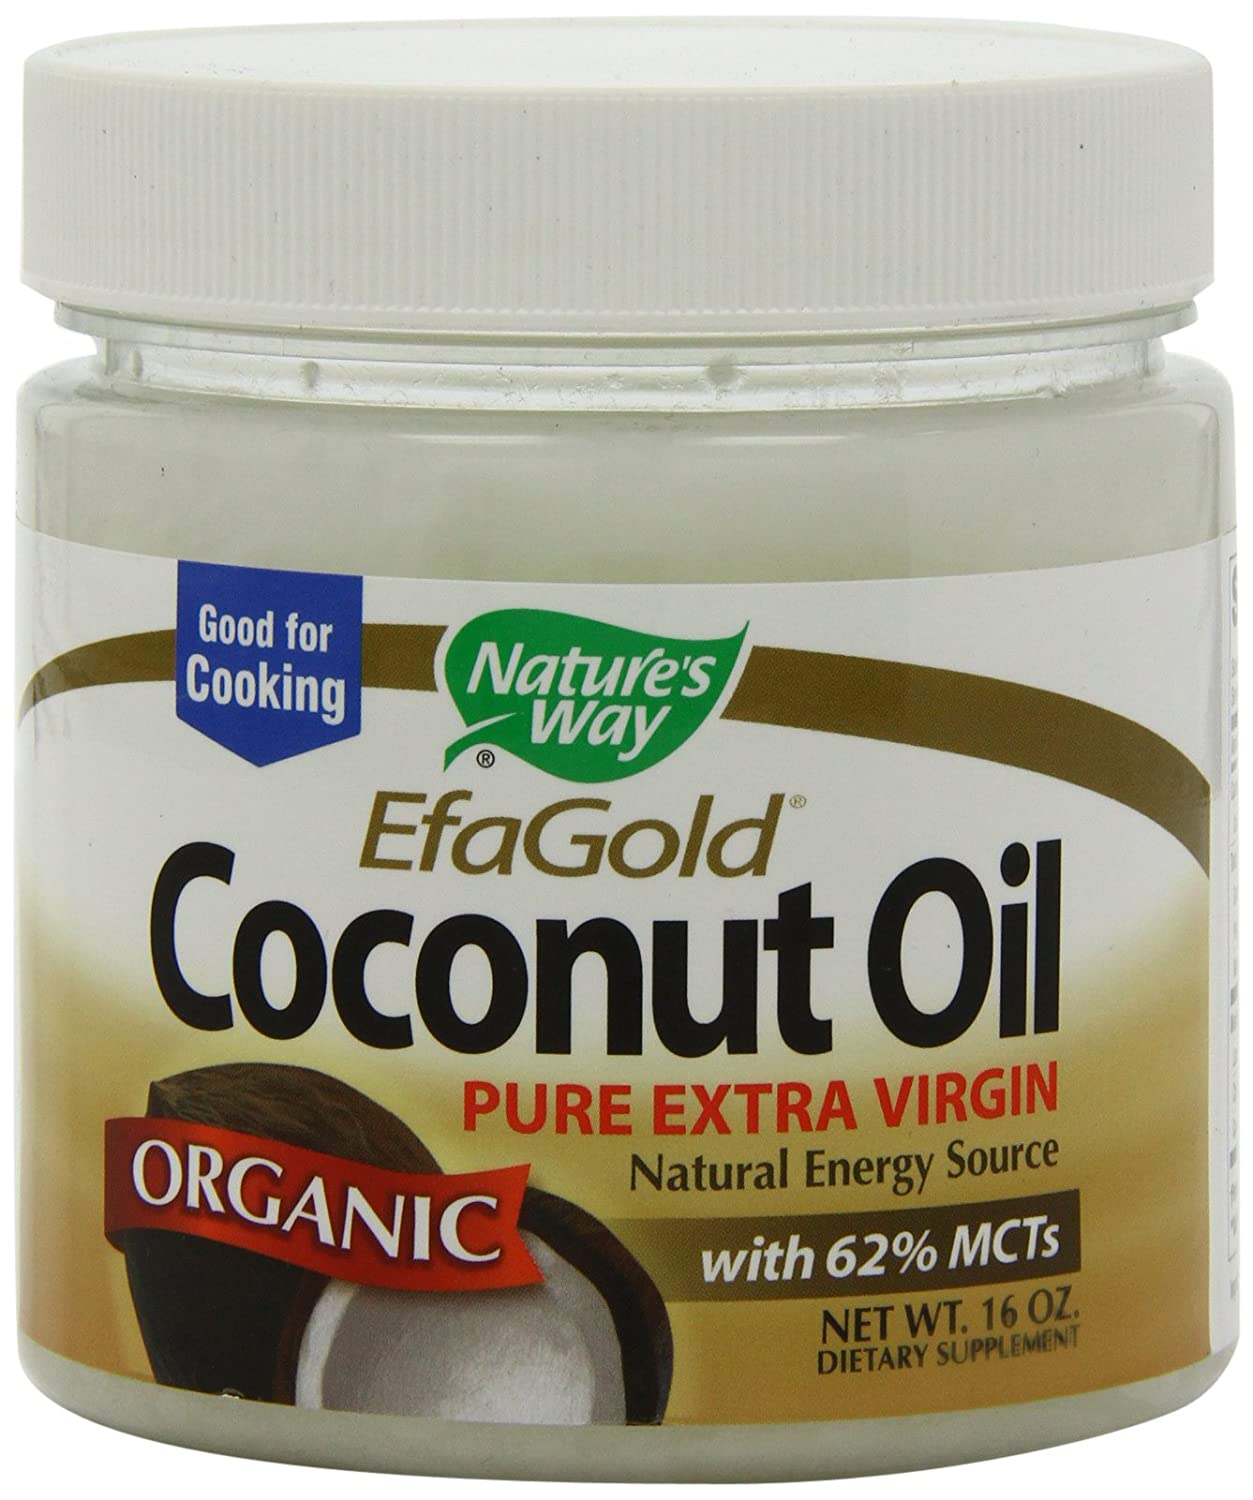 Amazon - Nature's Way Organic Coconut Oil - 16oz - $6.94